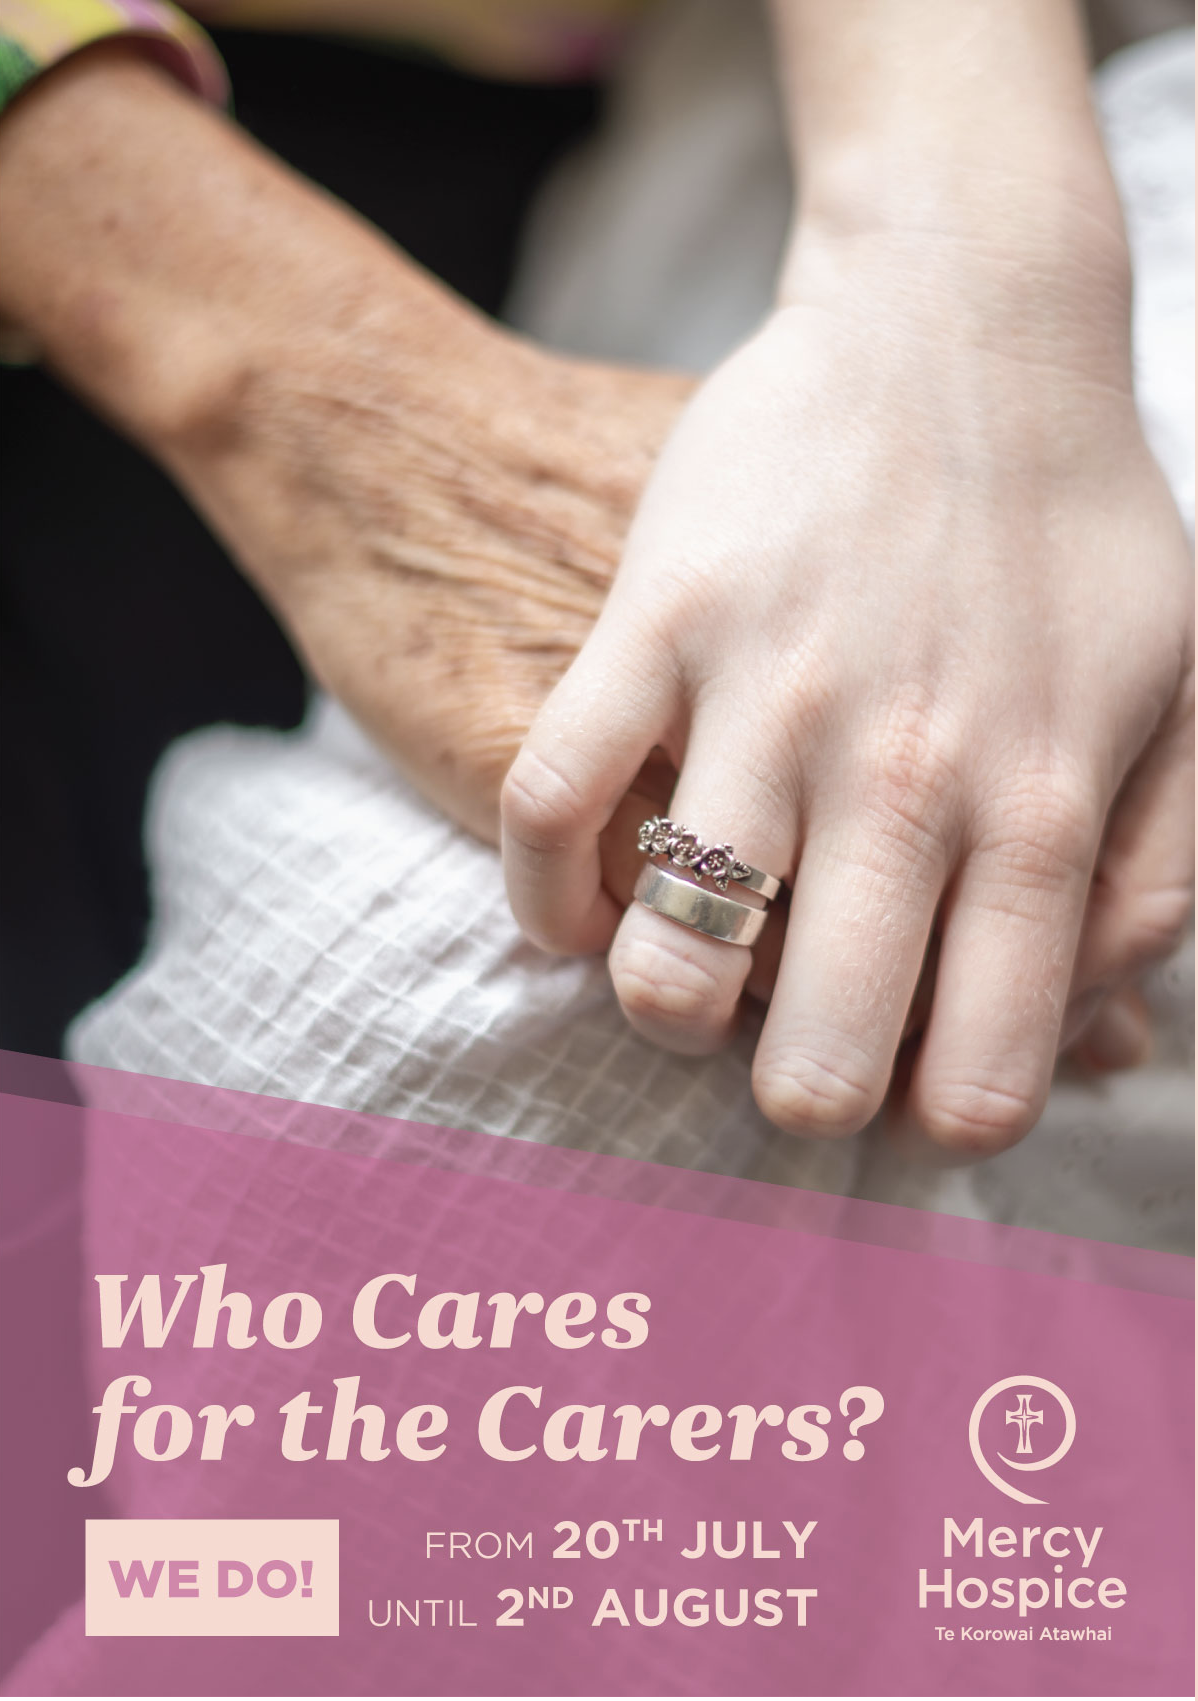 Who cares for the carers? WE DO!